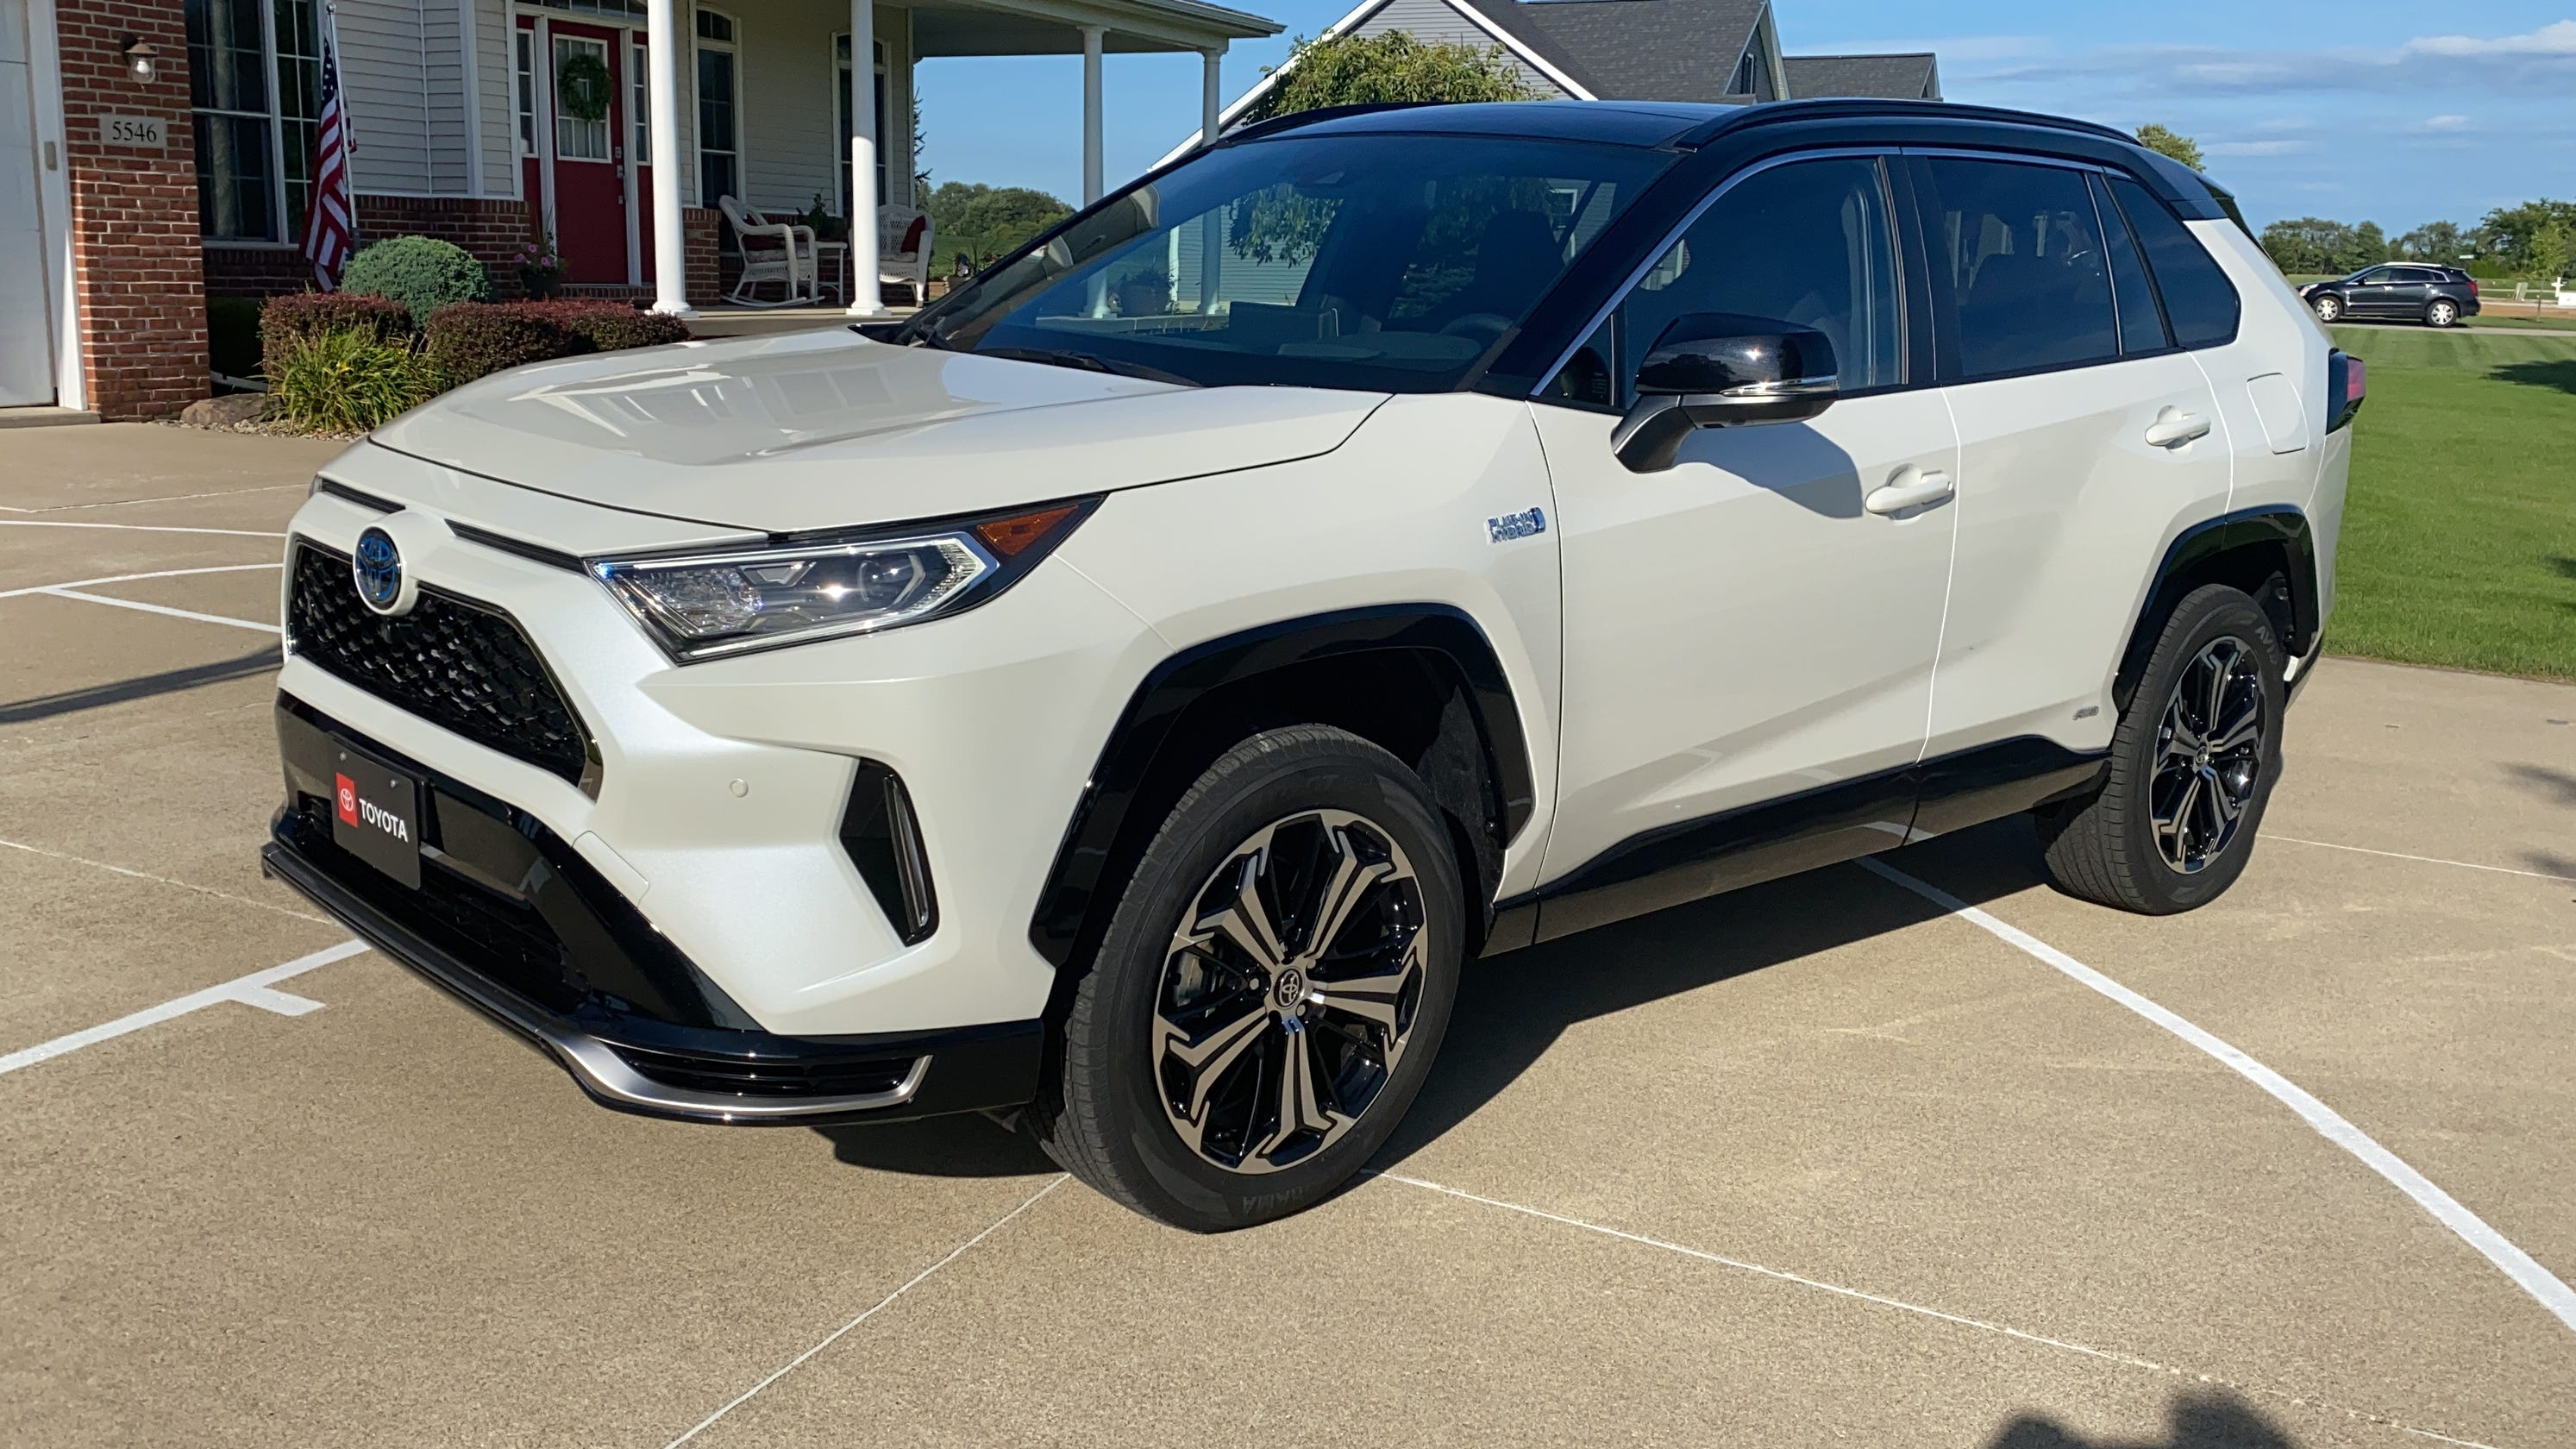 Toyota 2021 RAV4 Prime is a capable plug-in hybrid SUV